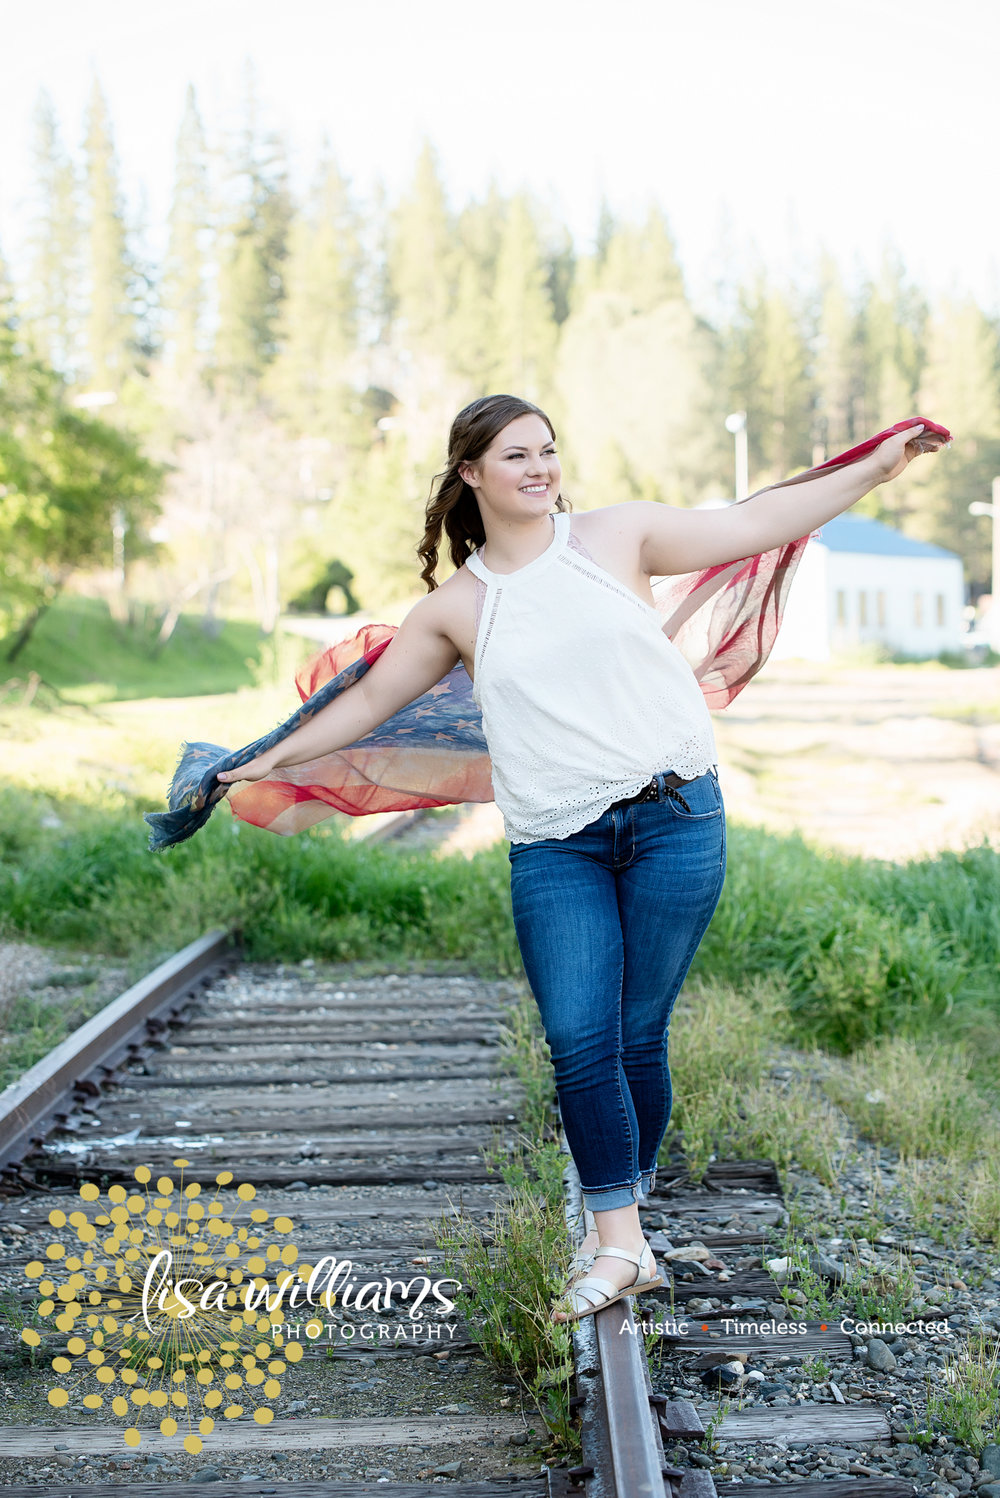 Lisa Williams photography – grass valley, Ca - Nevada county photographer – Colfax, CA – Rocklin – Roseville - Nevada City – Senior Portrait Photography – Alexa9.jpg